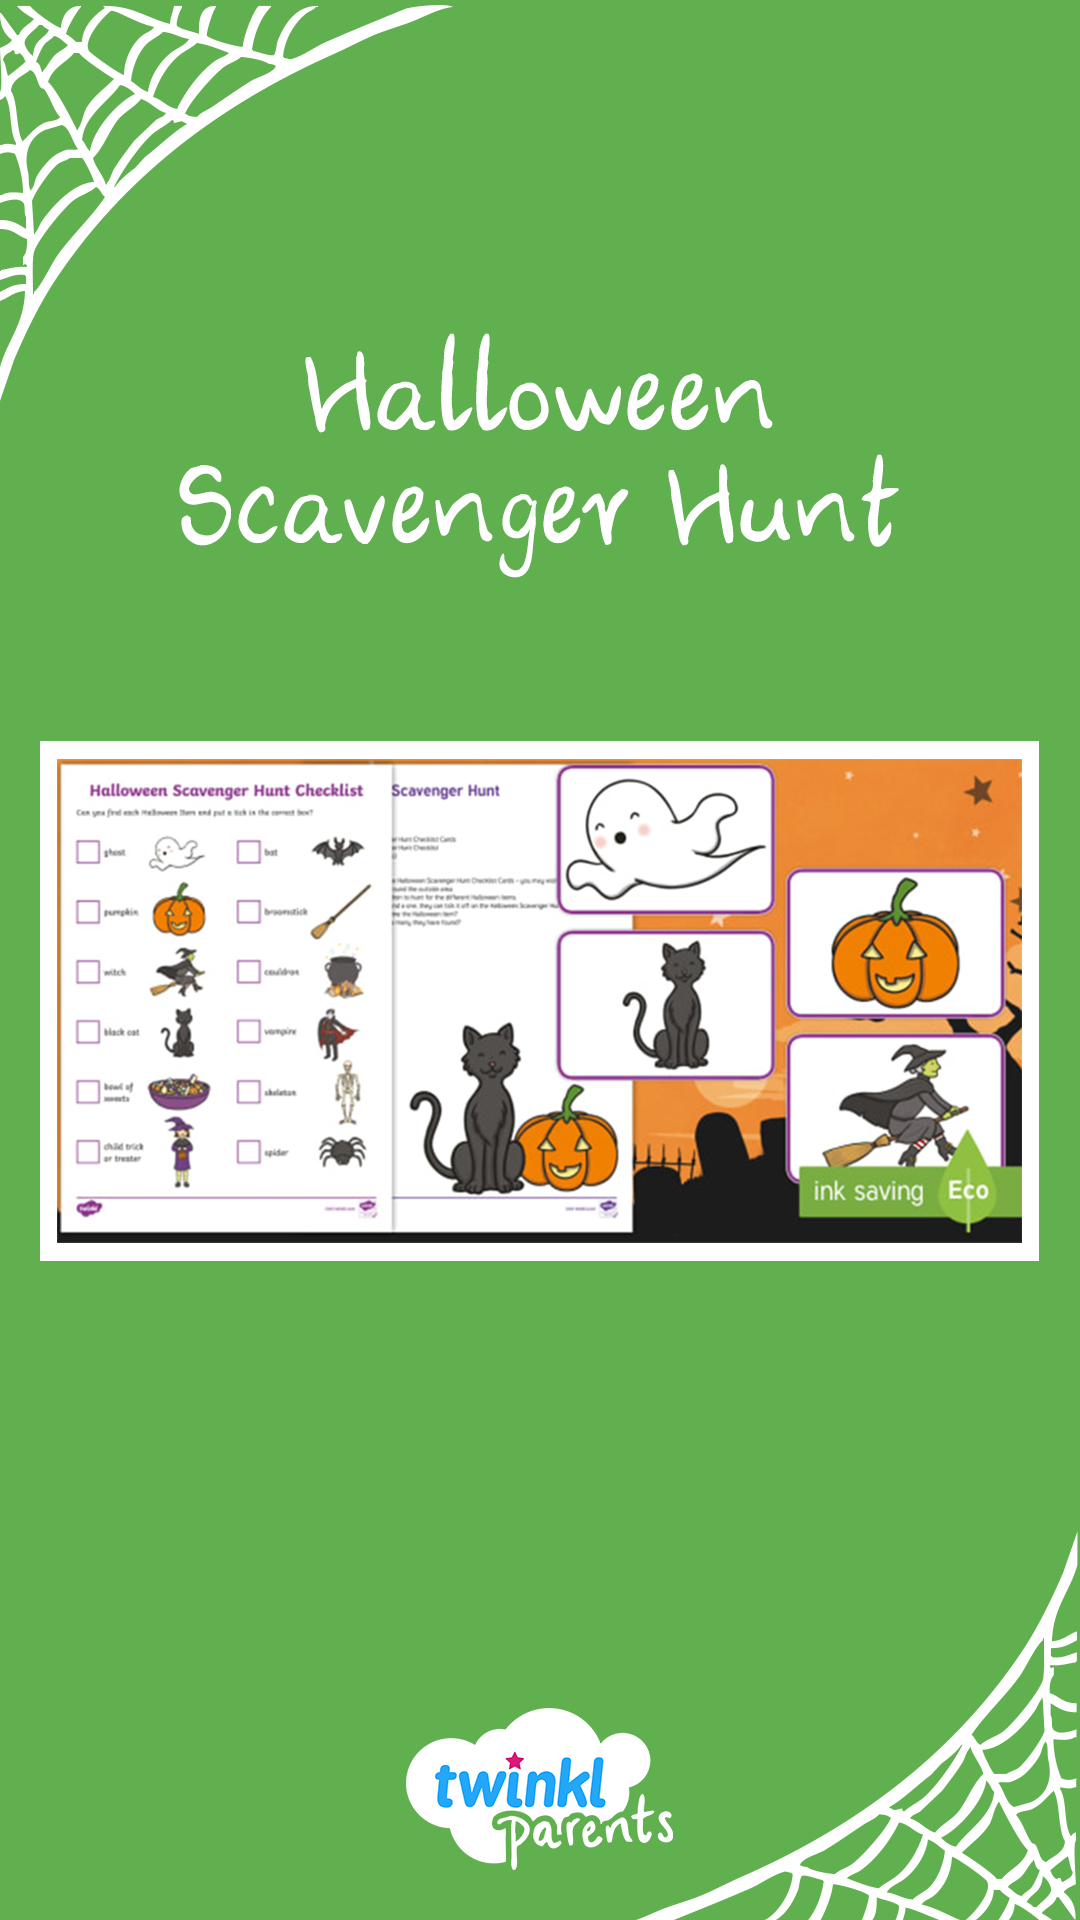 This Halloween scavenger hunt is a great addition to a